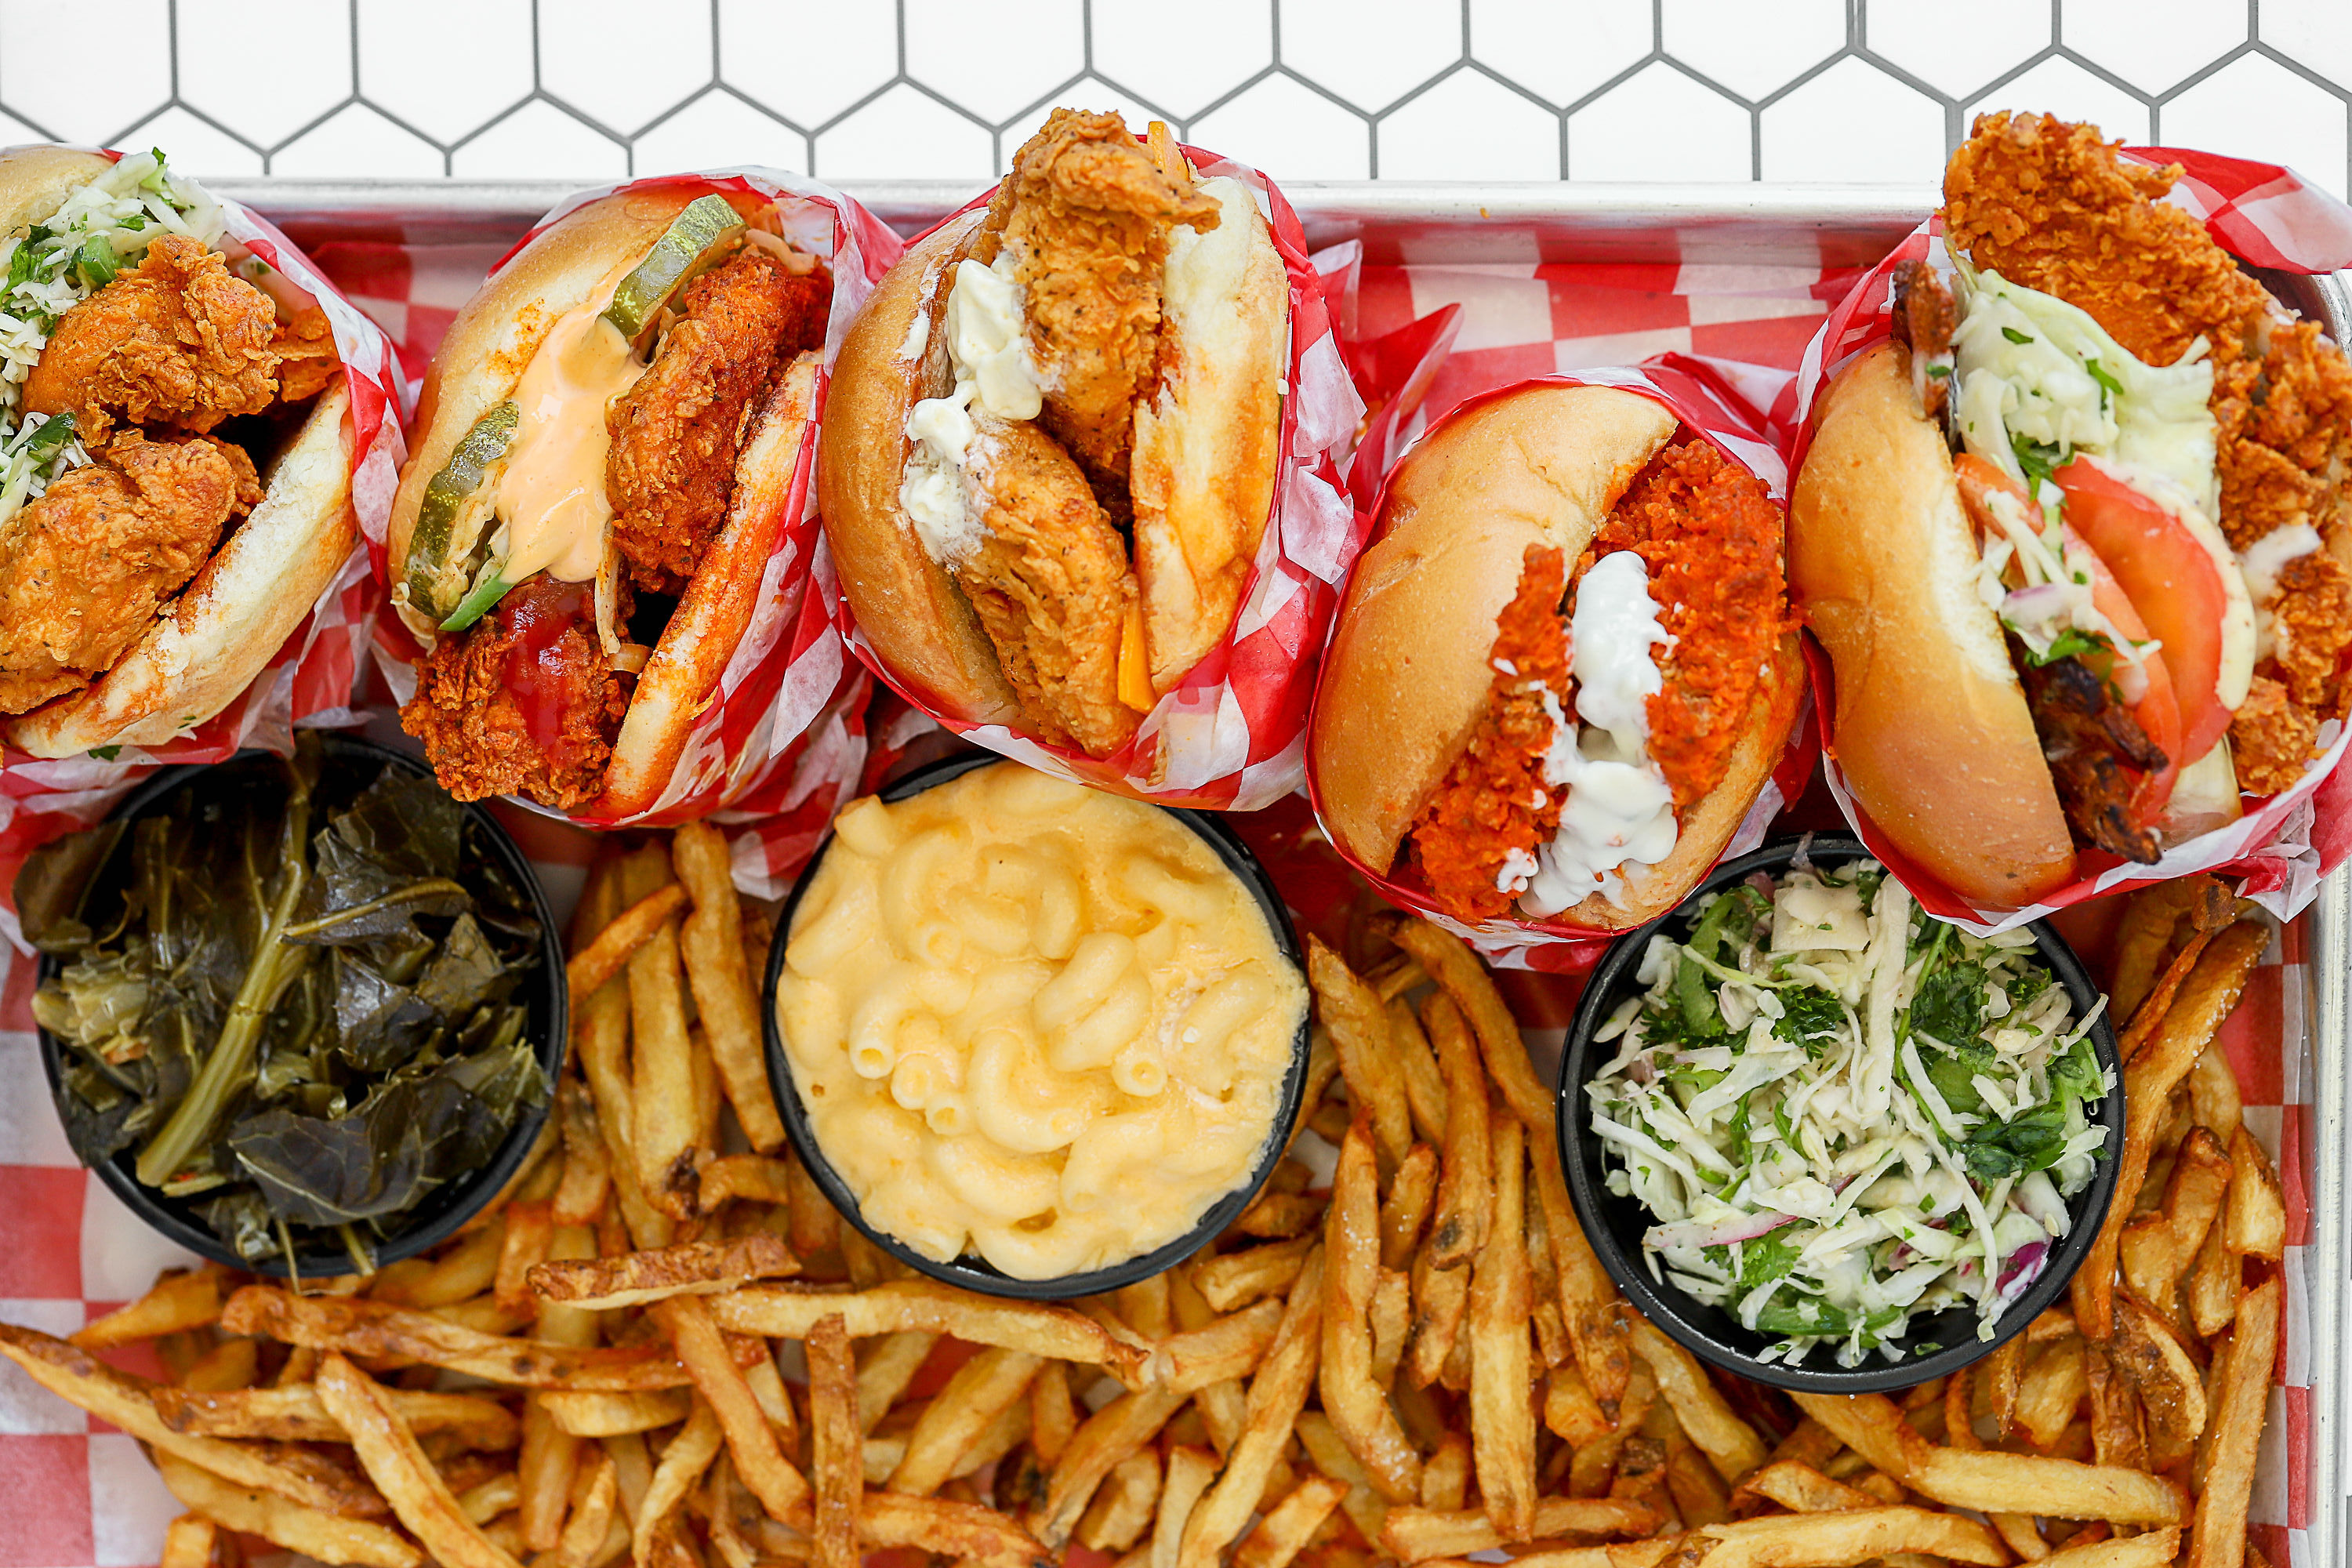 Five fried chicken sandwiches are surrounded by fries and other sides